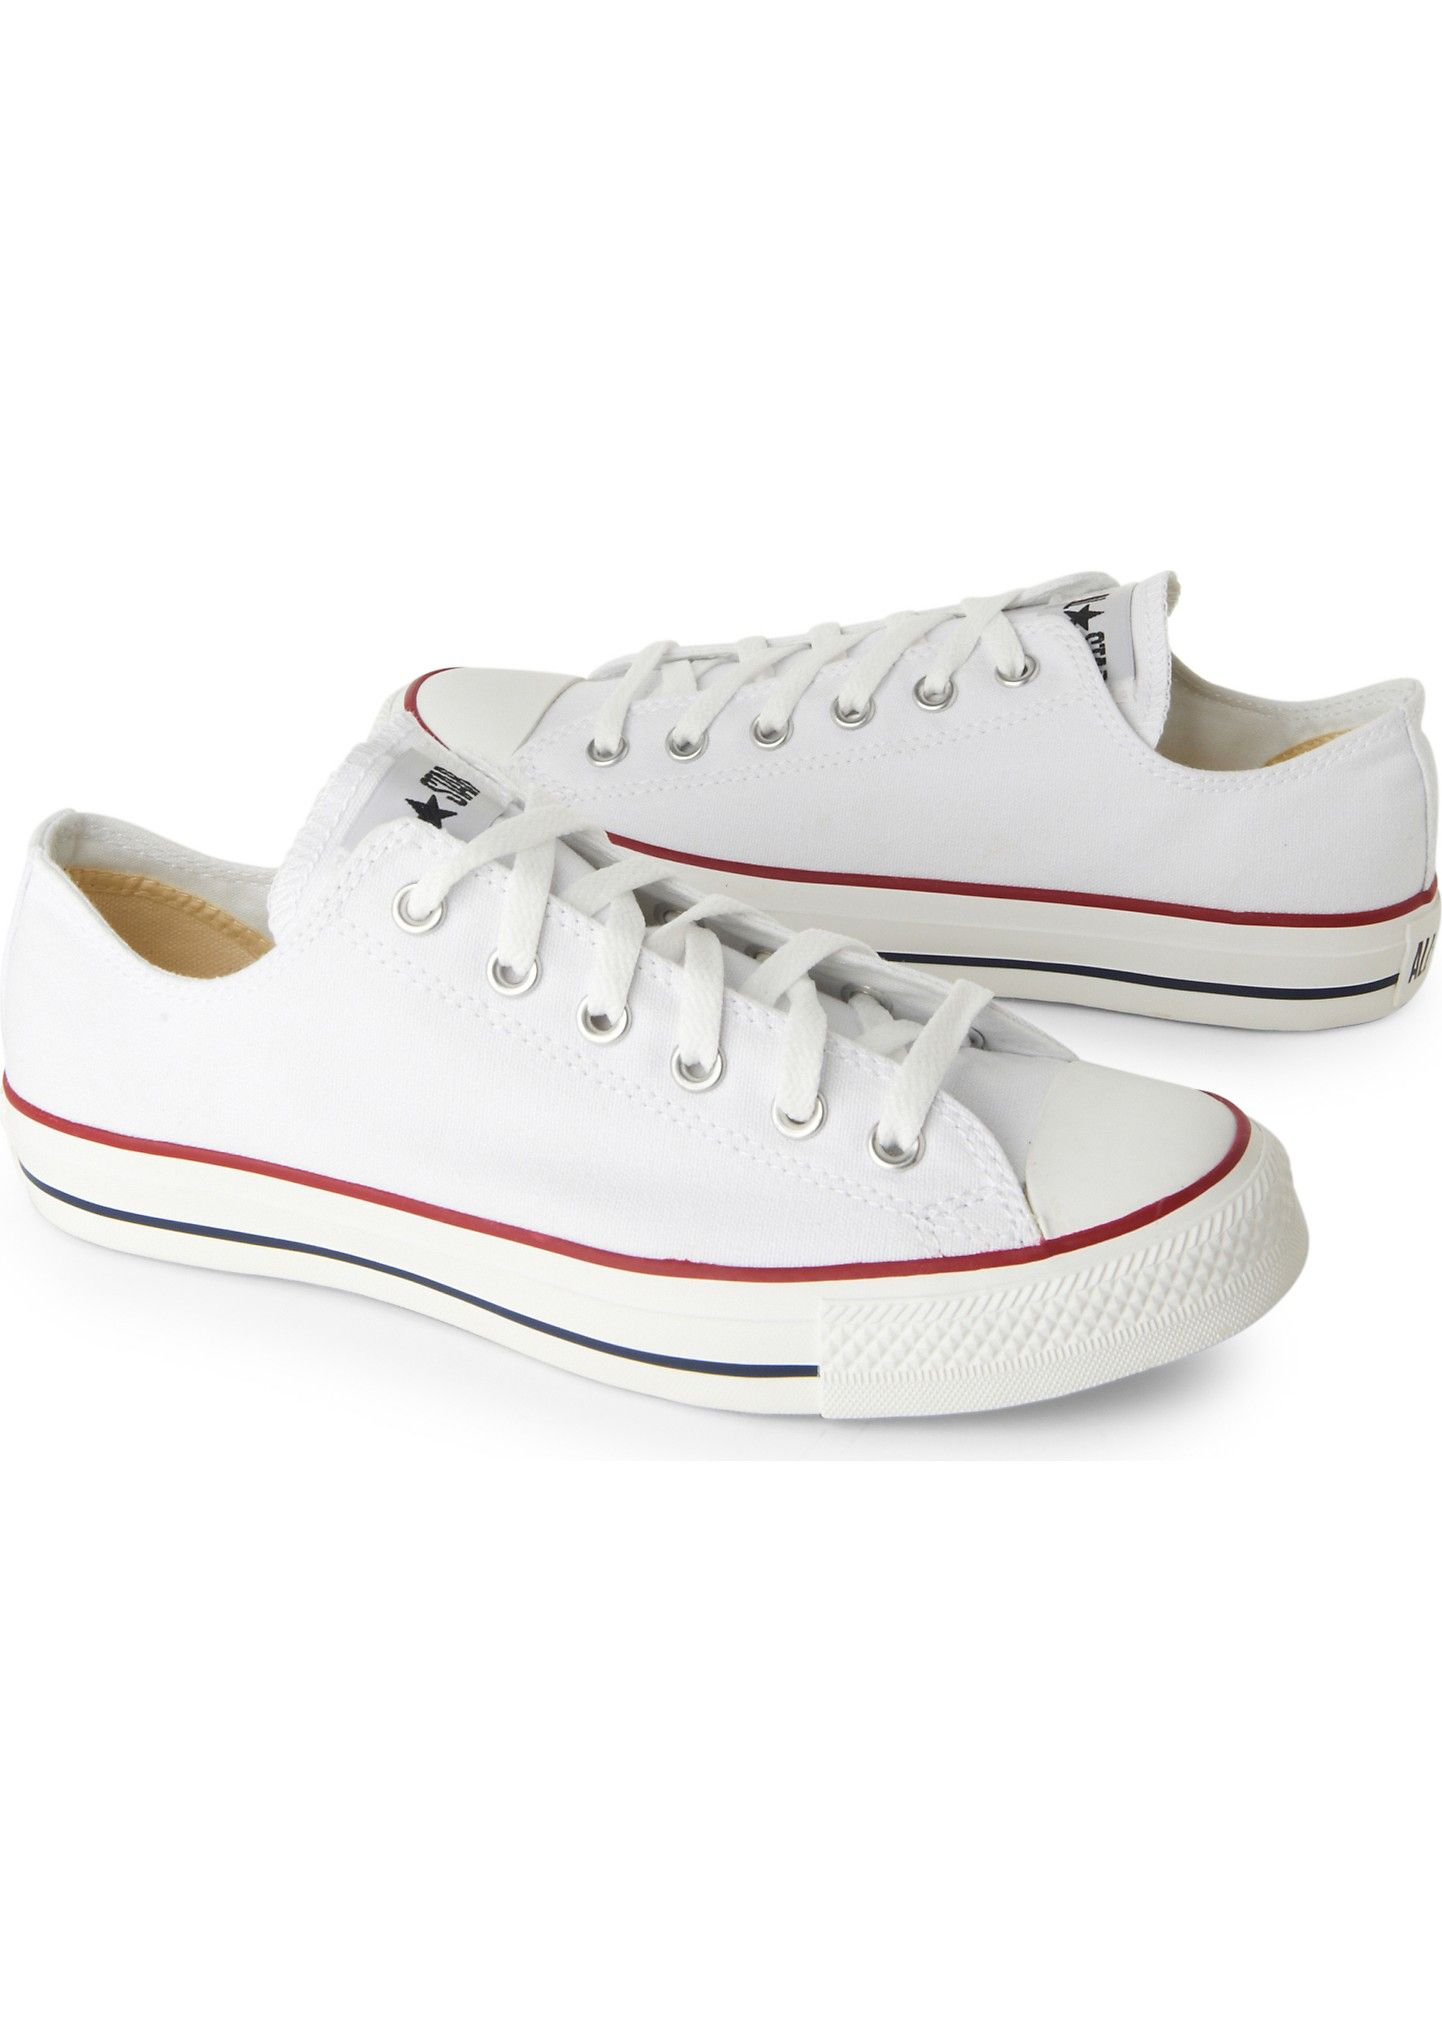 2f574f84a8be CONVERSE All Star Ox low shoes in 2019